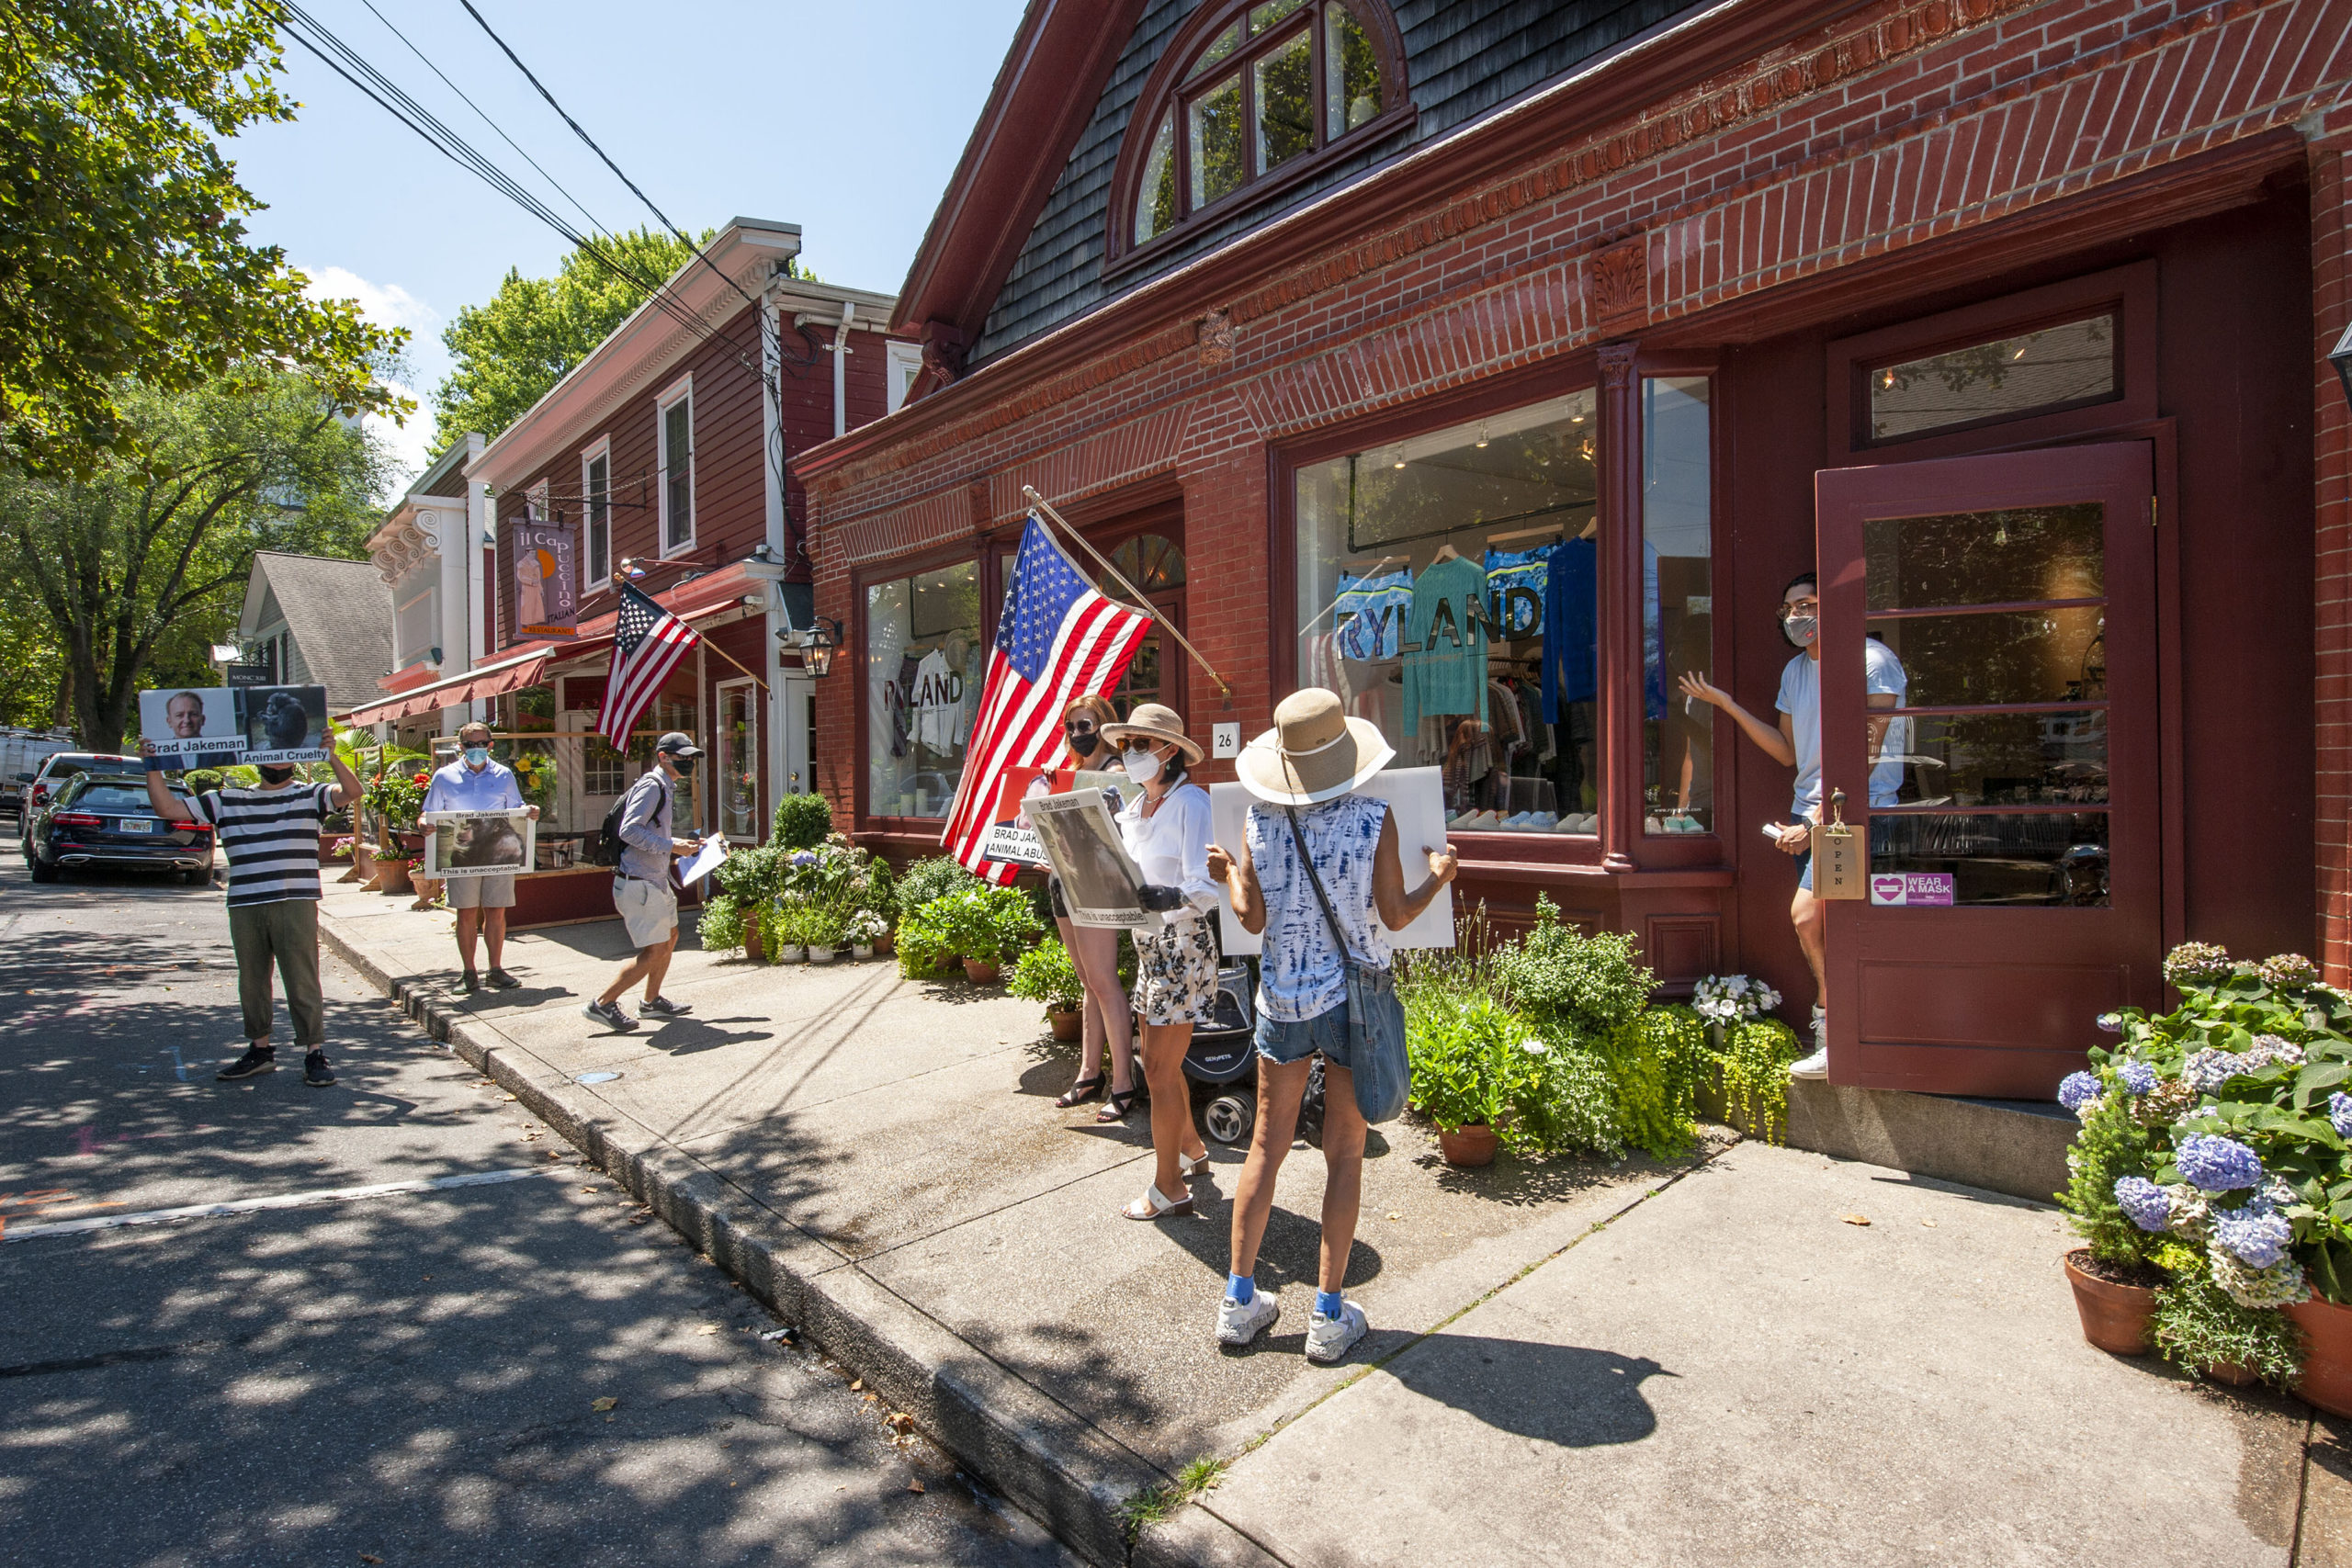 Protesters gathered on Madison Street in Sag Harbor on Saturday. MICHAEL HELLER